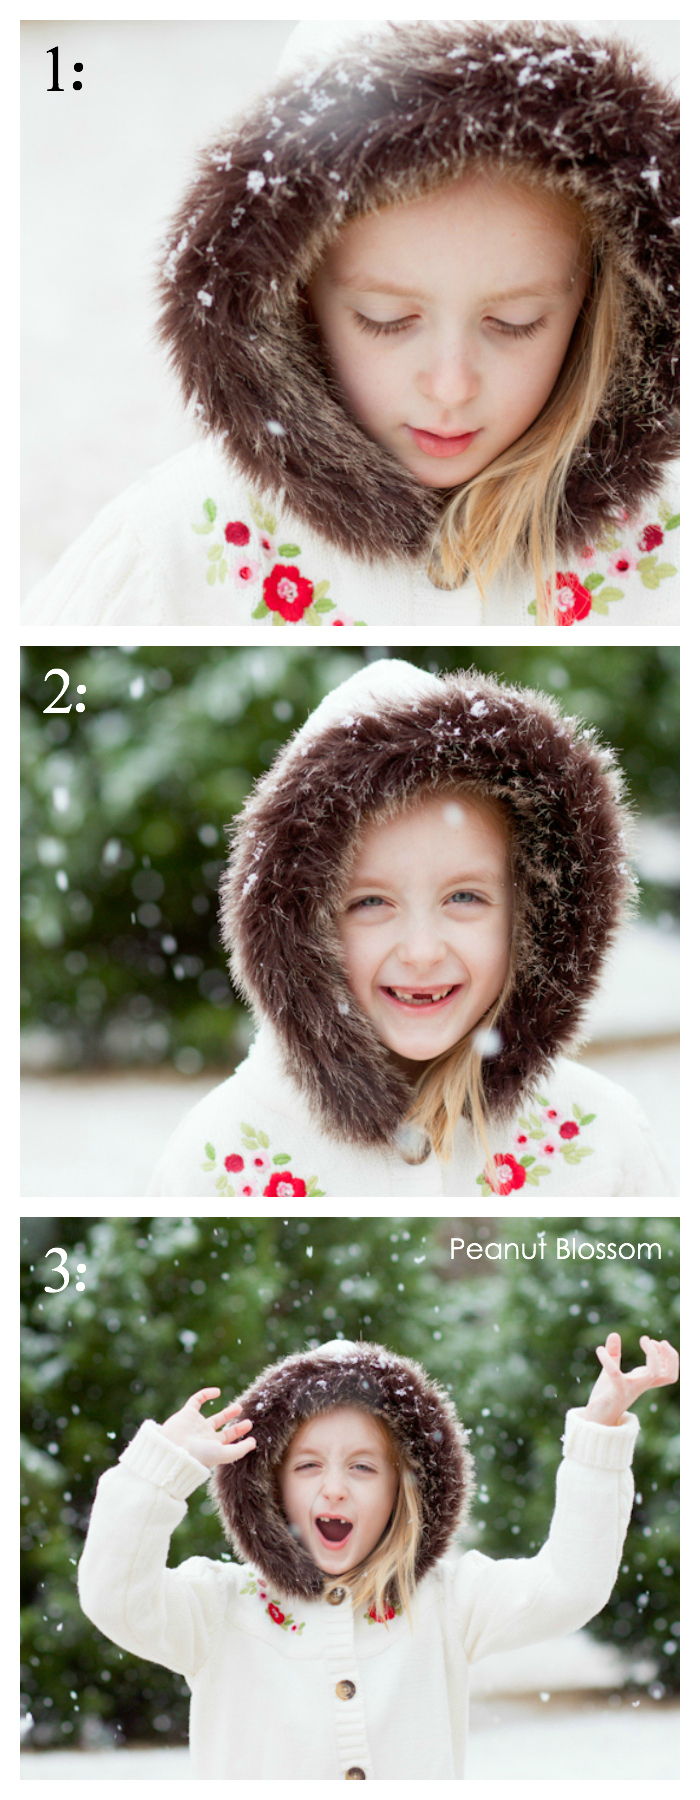 How to take unforgettable winter family photos